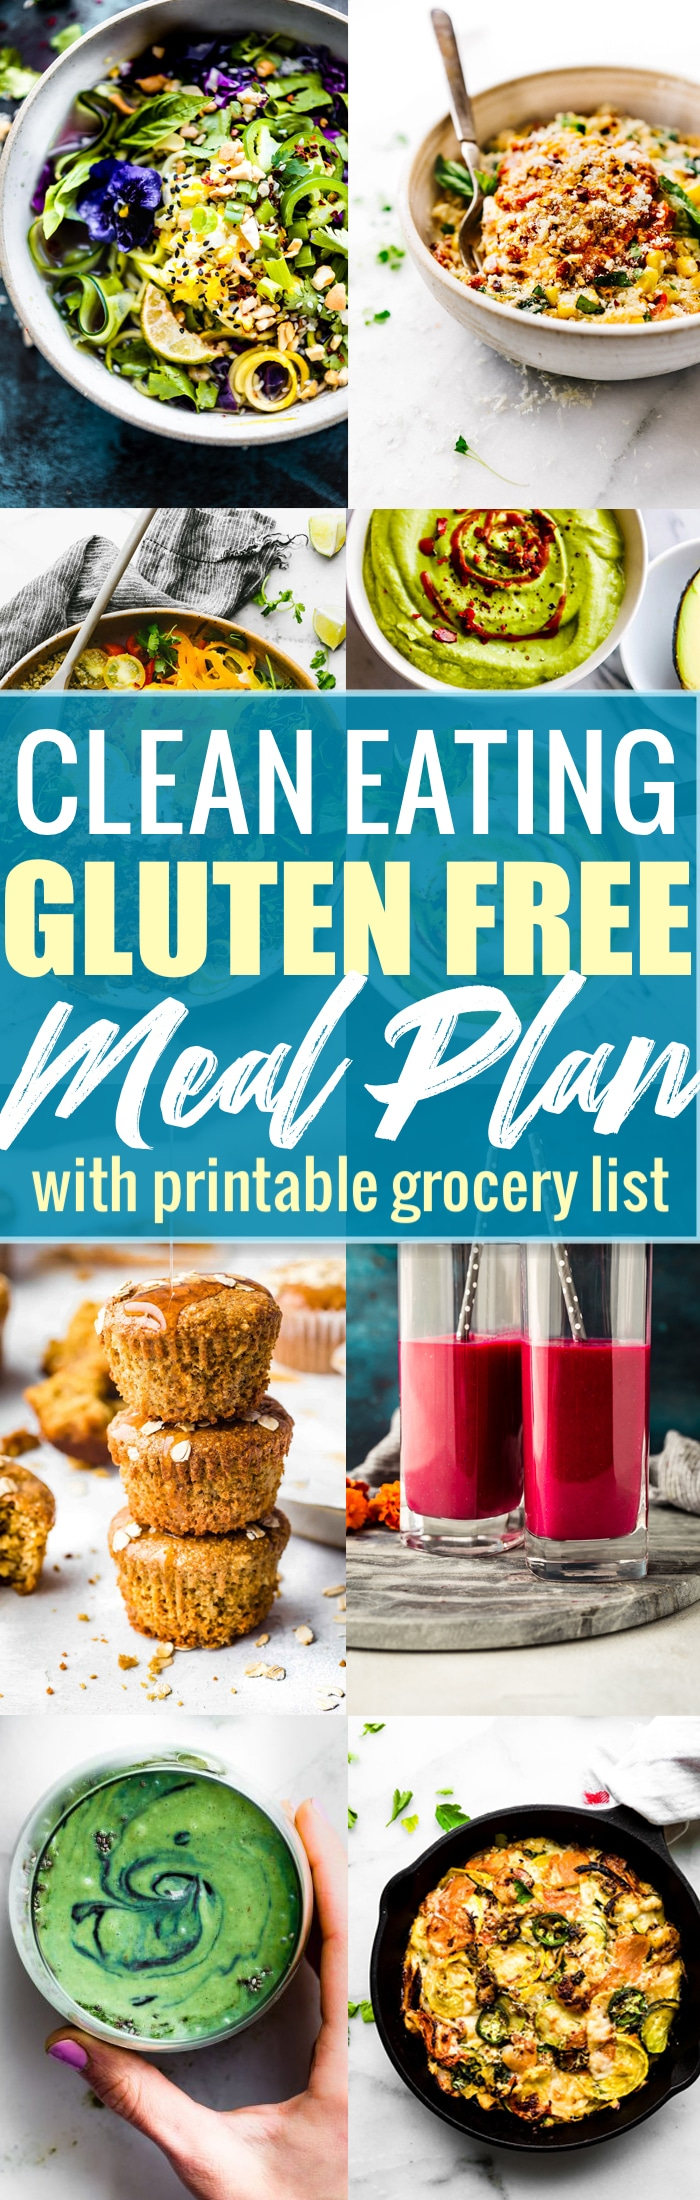 Clean eating gluten free meals that are made with seasonal ingredients, are refined sugar free, and of course, delicious! The recipes in this CLEAN EATING gluten free meal plan will give you a boost of nutrients from real food while also limiting extra sugars. #cleaneating #glutenfree #mealplan.